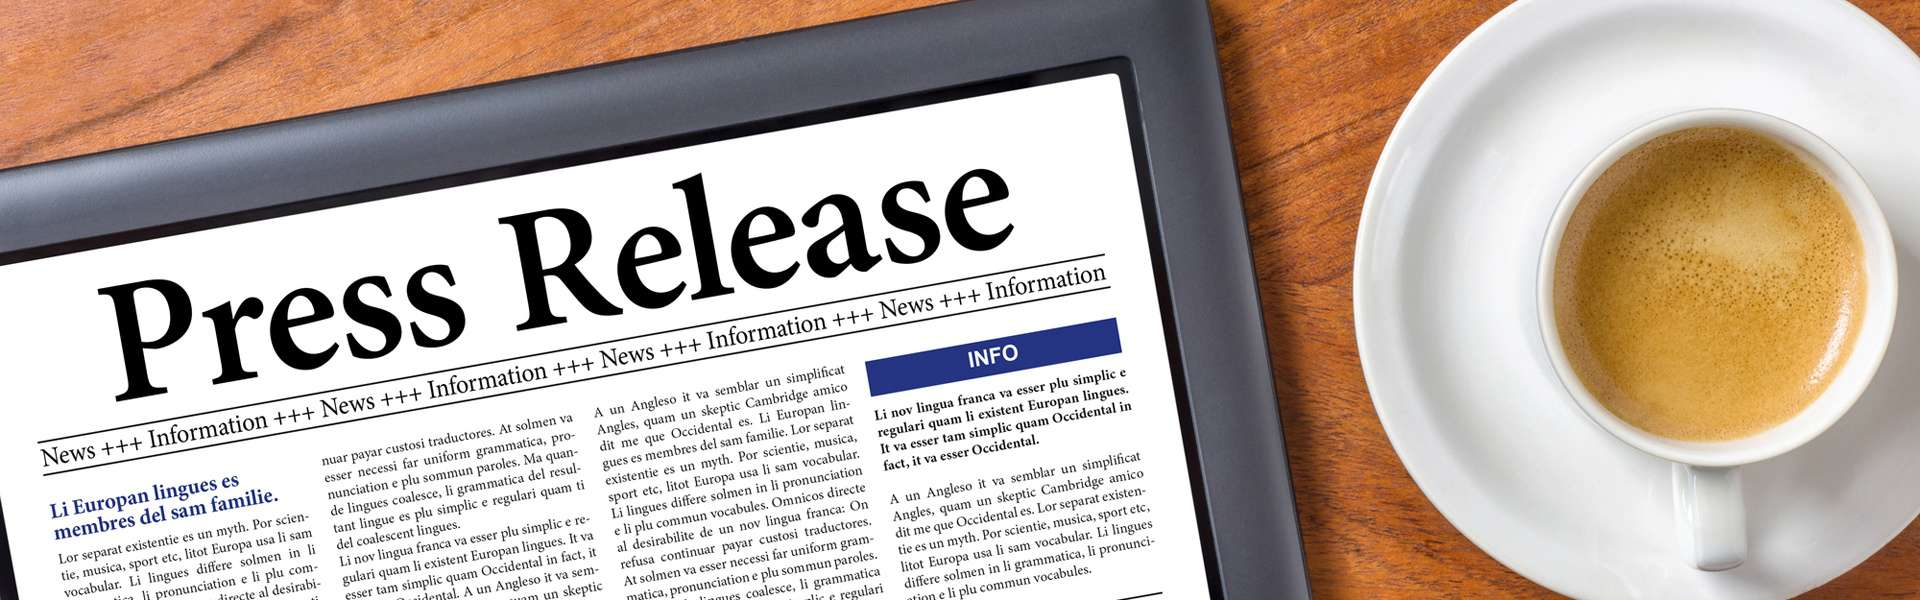 Should you hire a press release writing service